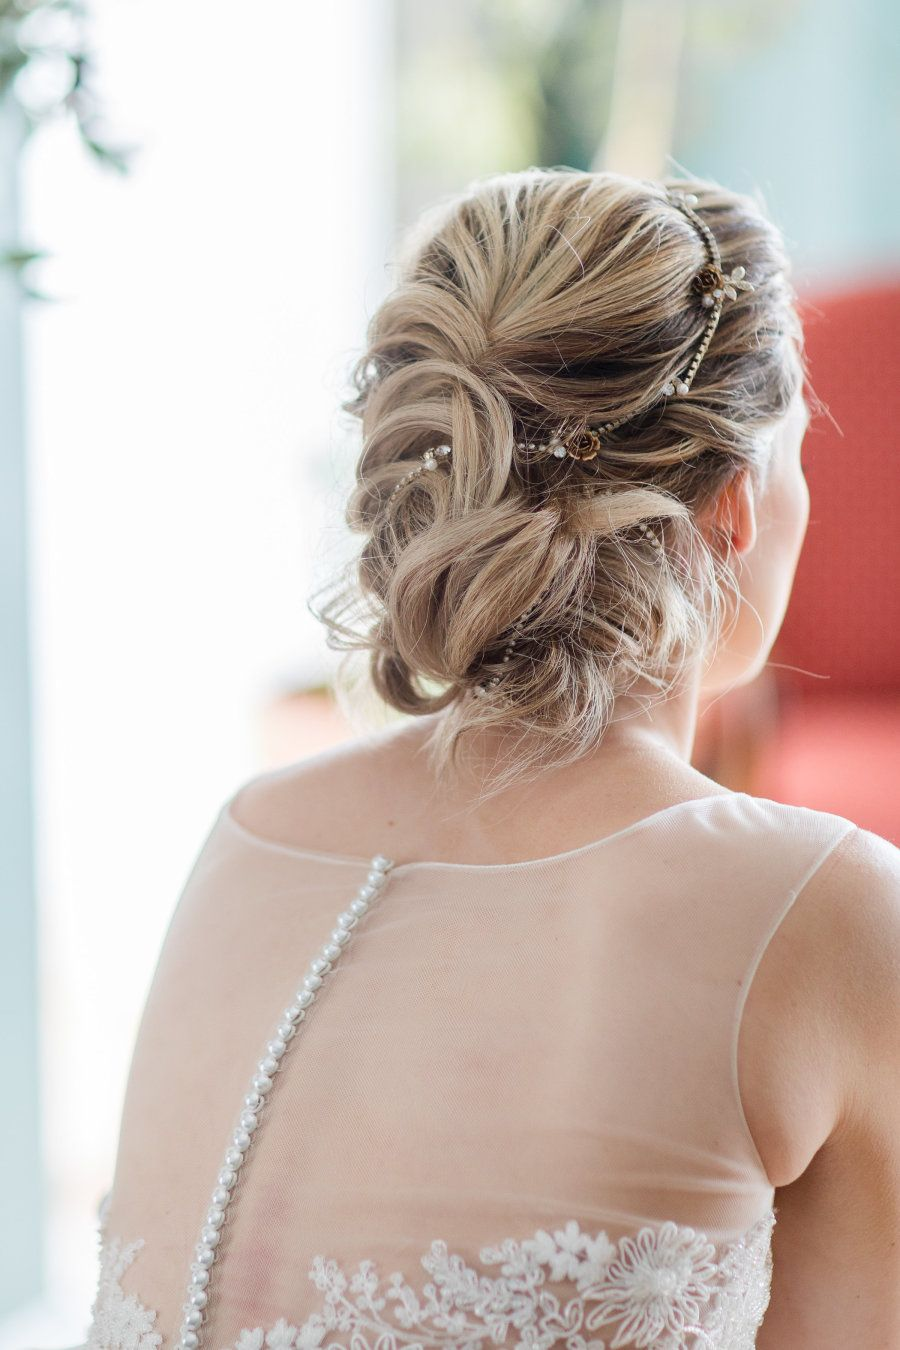 Wedding decorations accessories   Gorgeously Ethereal Bridal Hair Accessories That Donut Involve a